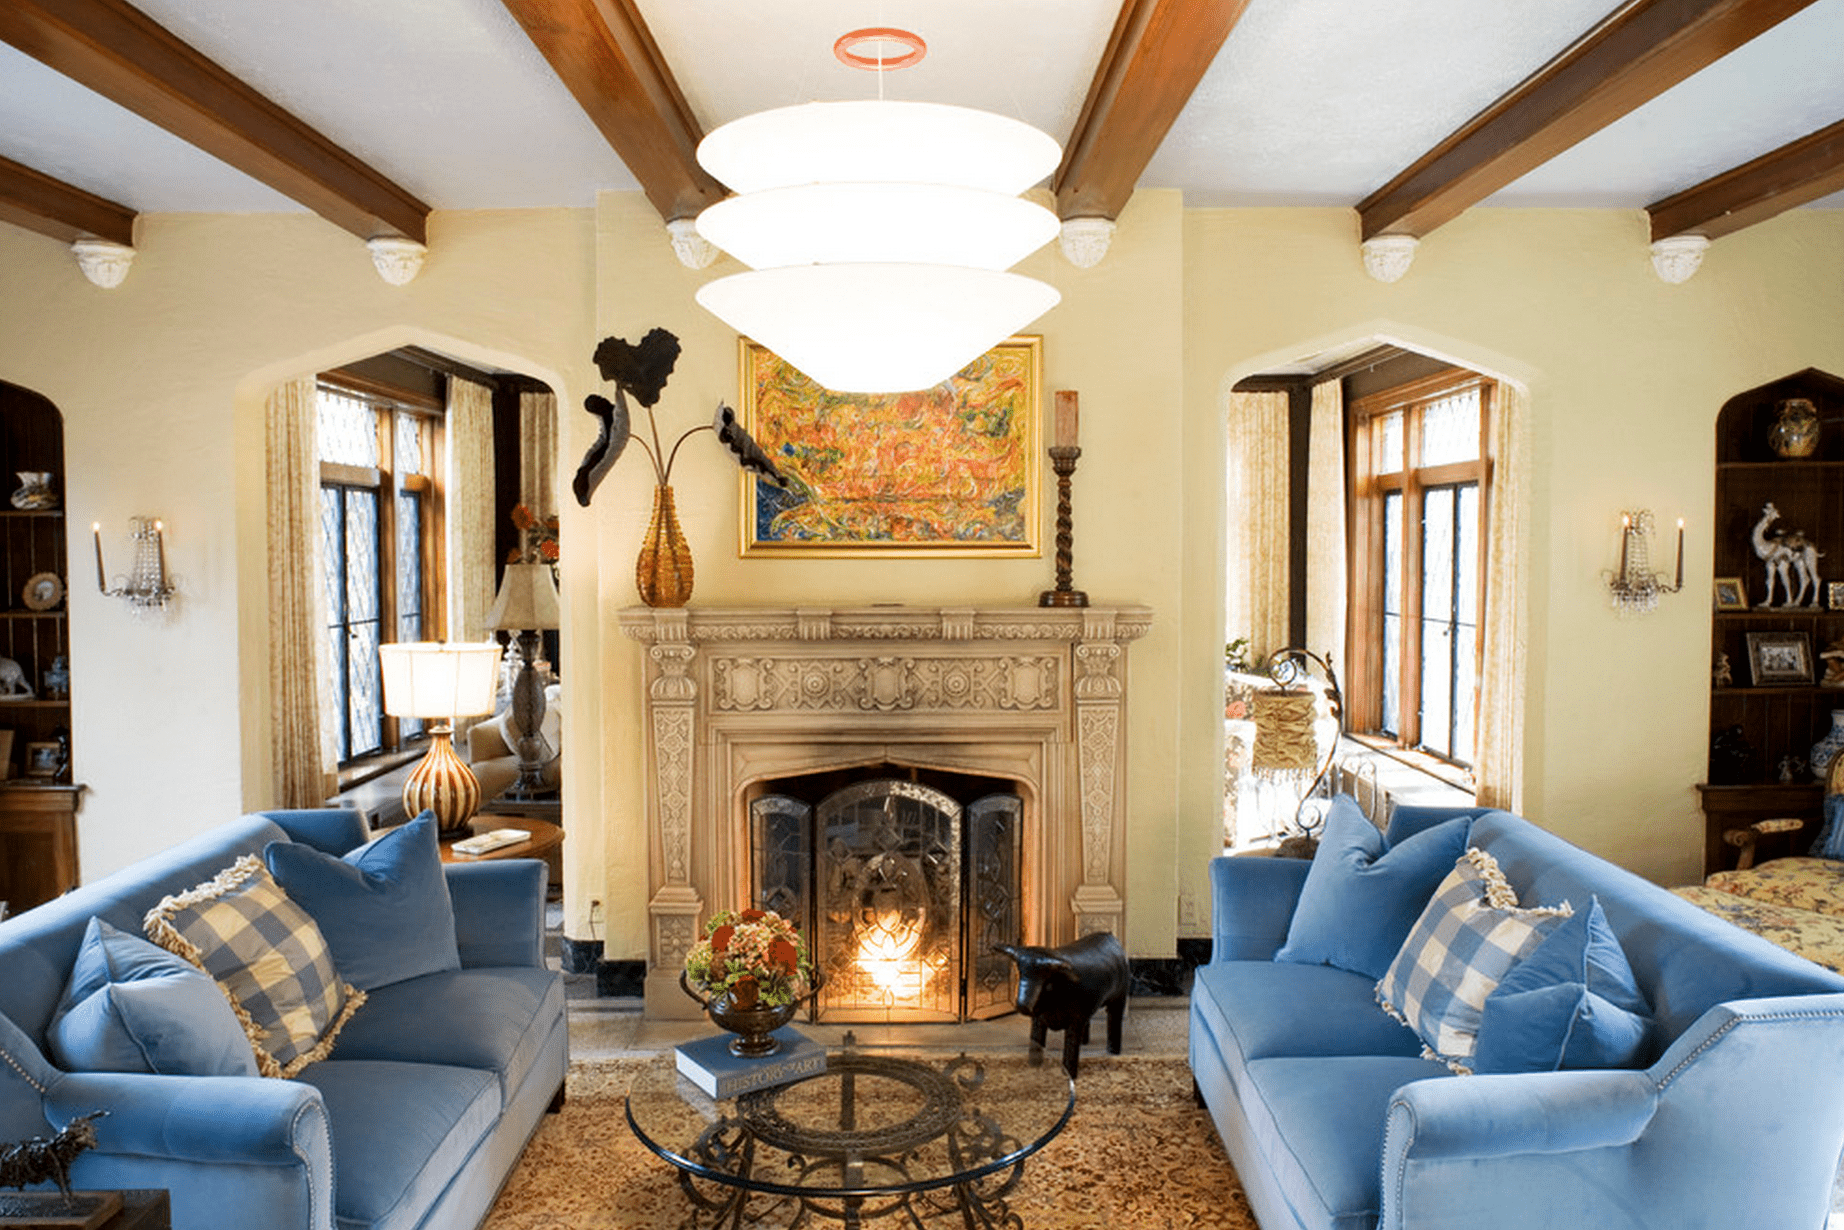 Living room with carved fireplace details